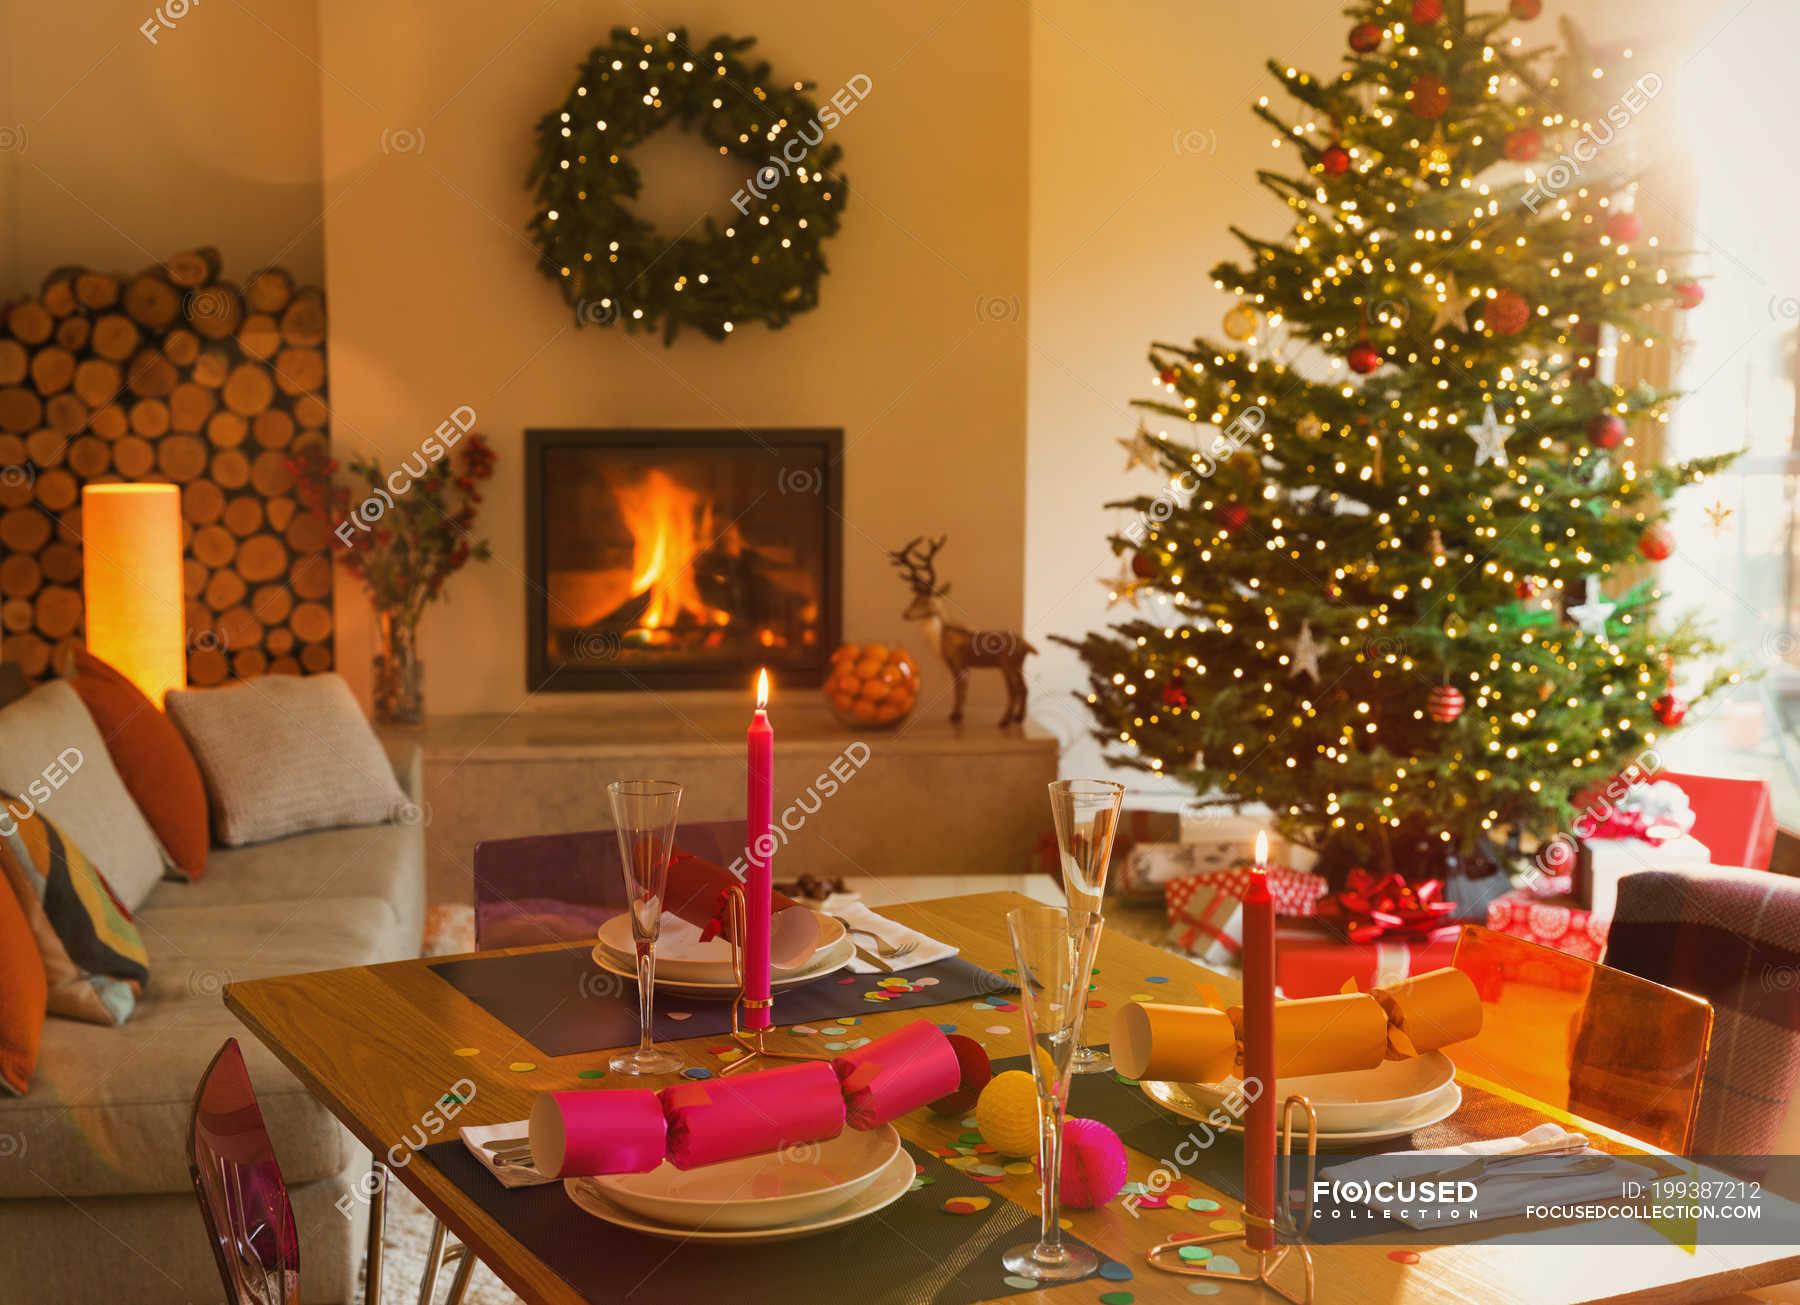 Ambient Dining Table Fireplace And Christmas Tree In Living Room